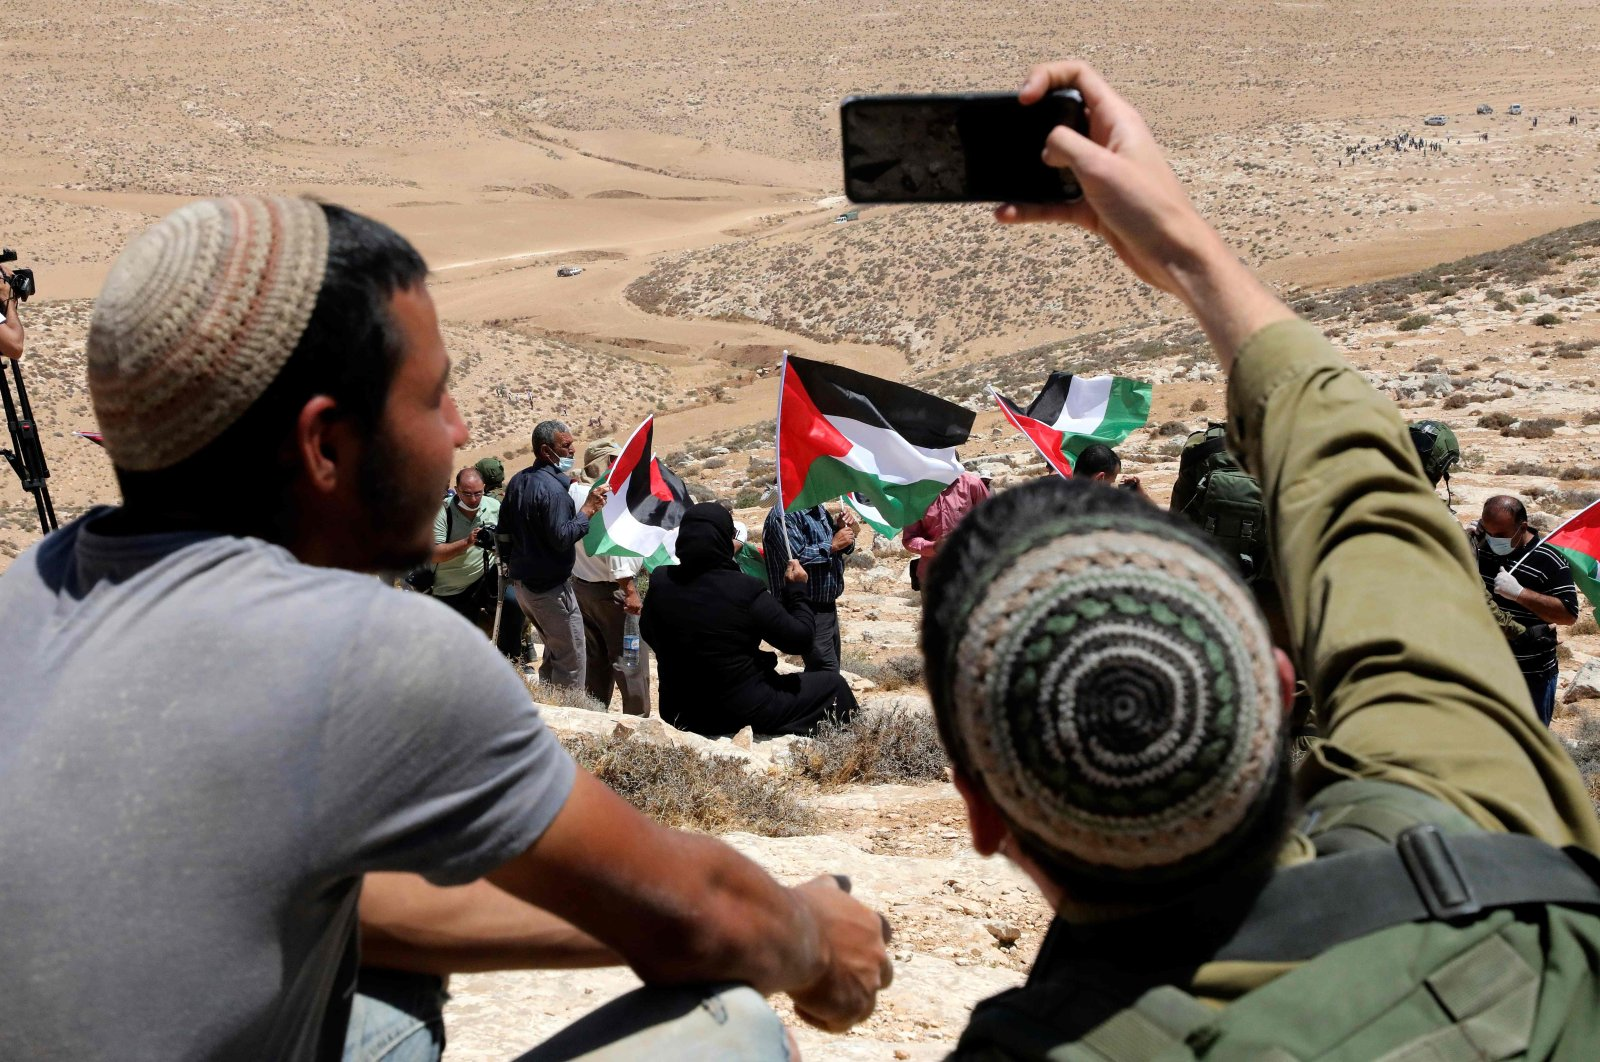 An Israeli soldier takes a selfie of himself with a Jewish settler, as Palestinian landowners and demonstrators protest Israeli settlement building activities on their land in al-Thaalaba village, near Yatta, south of Hebron city in the occupied West Bank, Aug. 21, 2020. (AFP Photo)